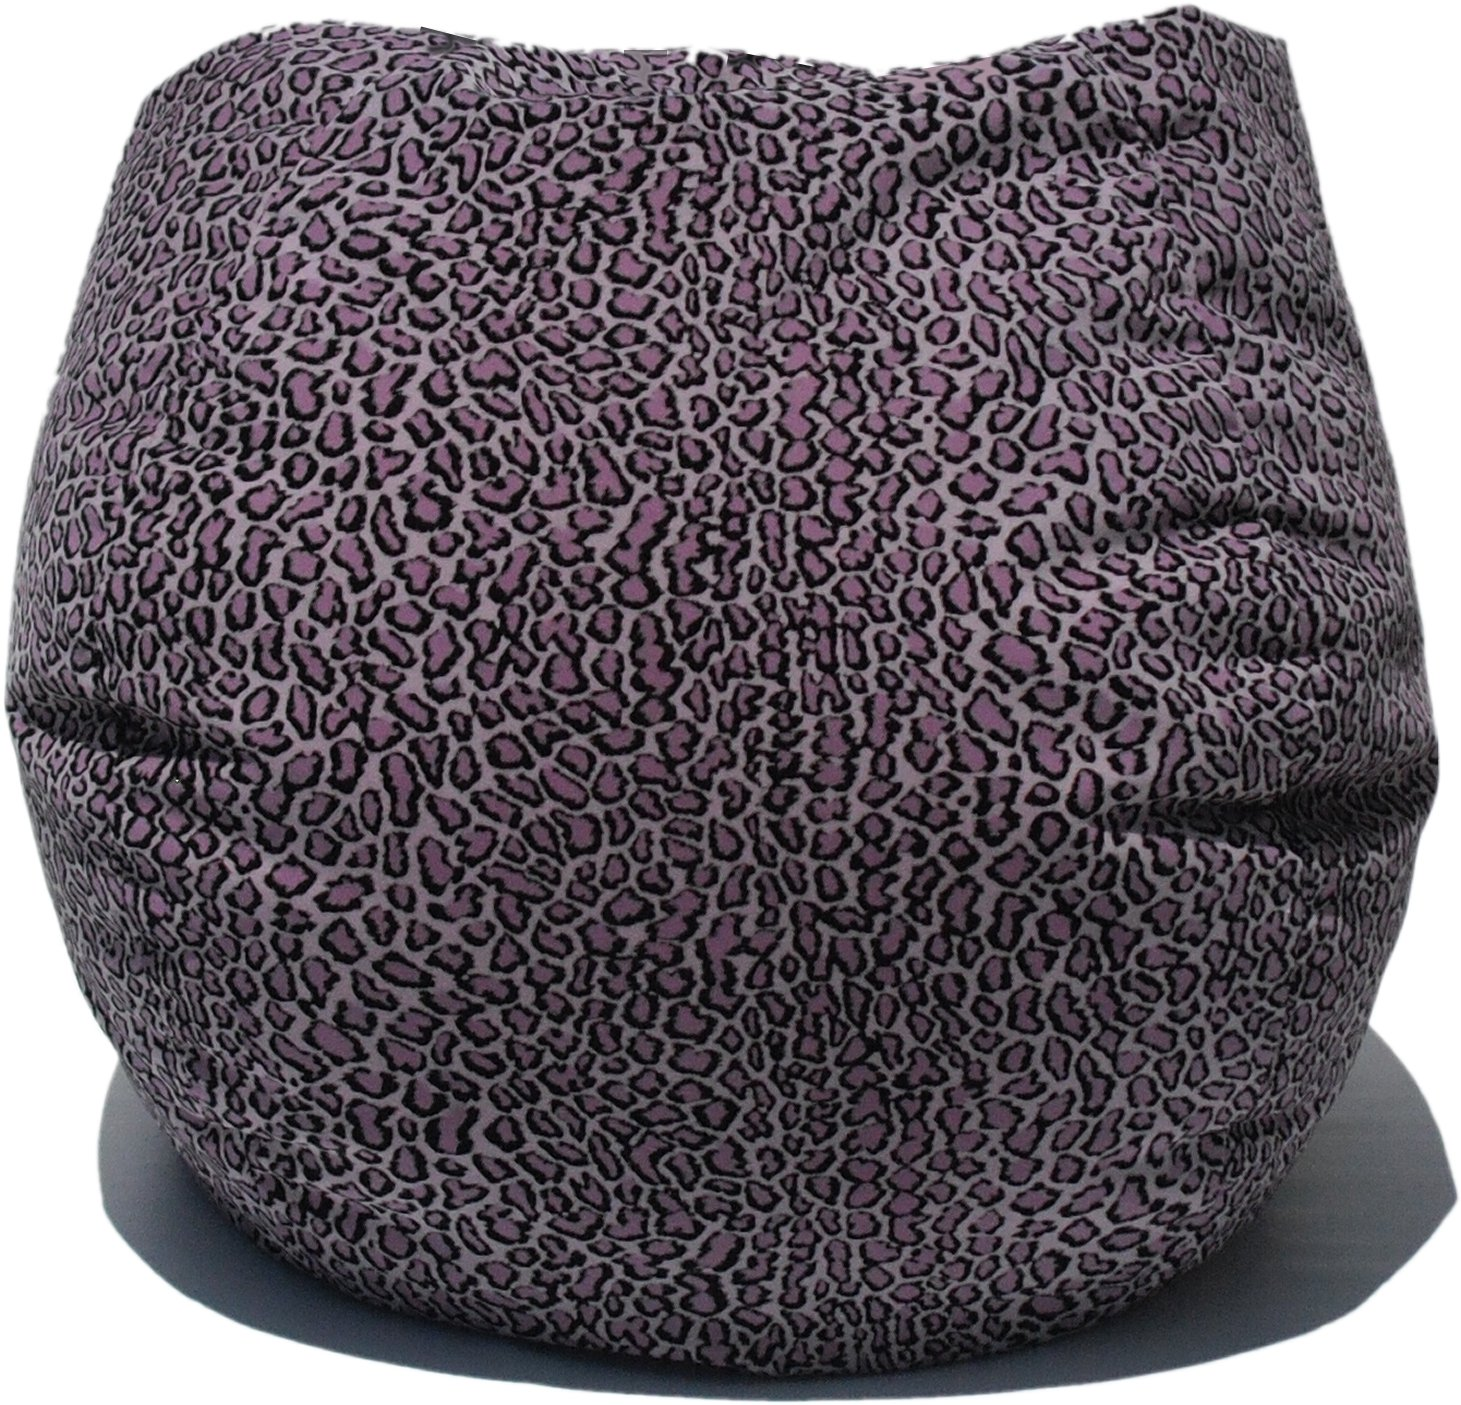 Bean Bag Boys Fabric Bean Bag Chair in Bobcat / Lilac